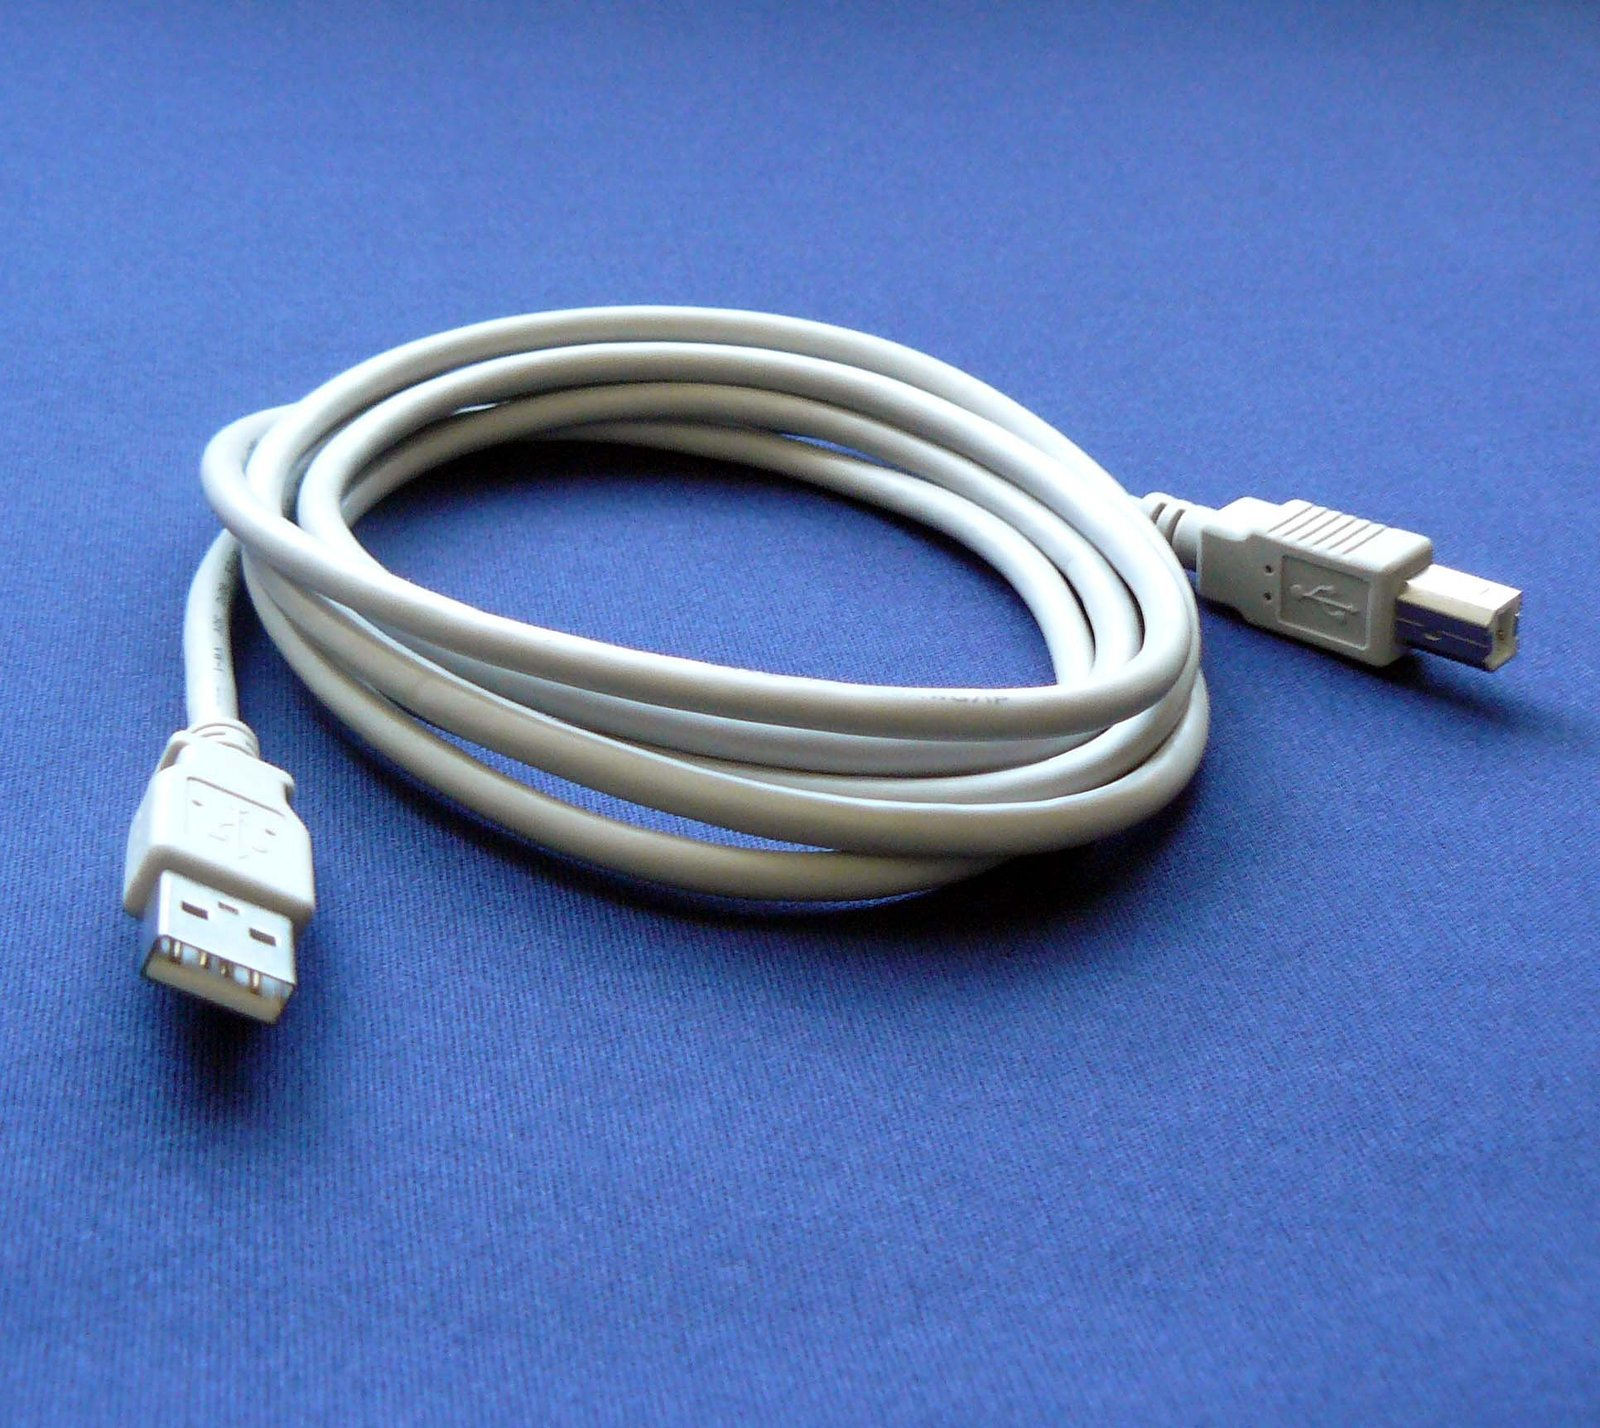 Primary image for Dell 1133 Printer Compatible USB 2.0 Cable Cord for PC, Notebook, Macbook - 6...